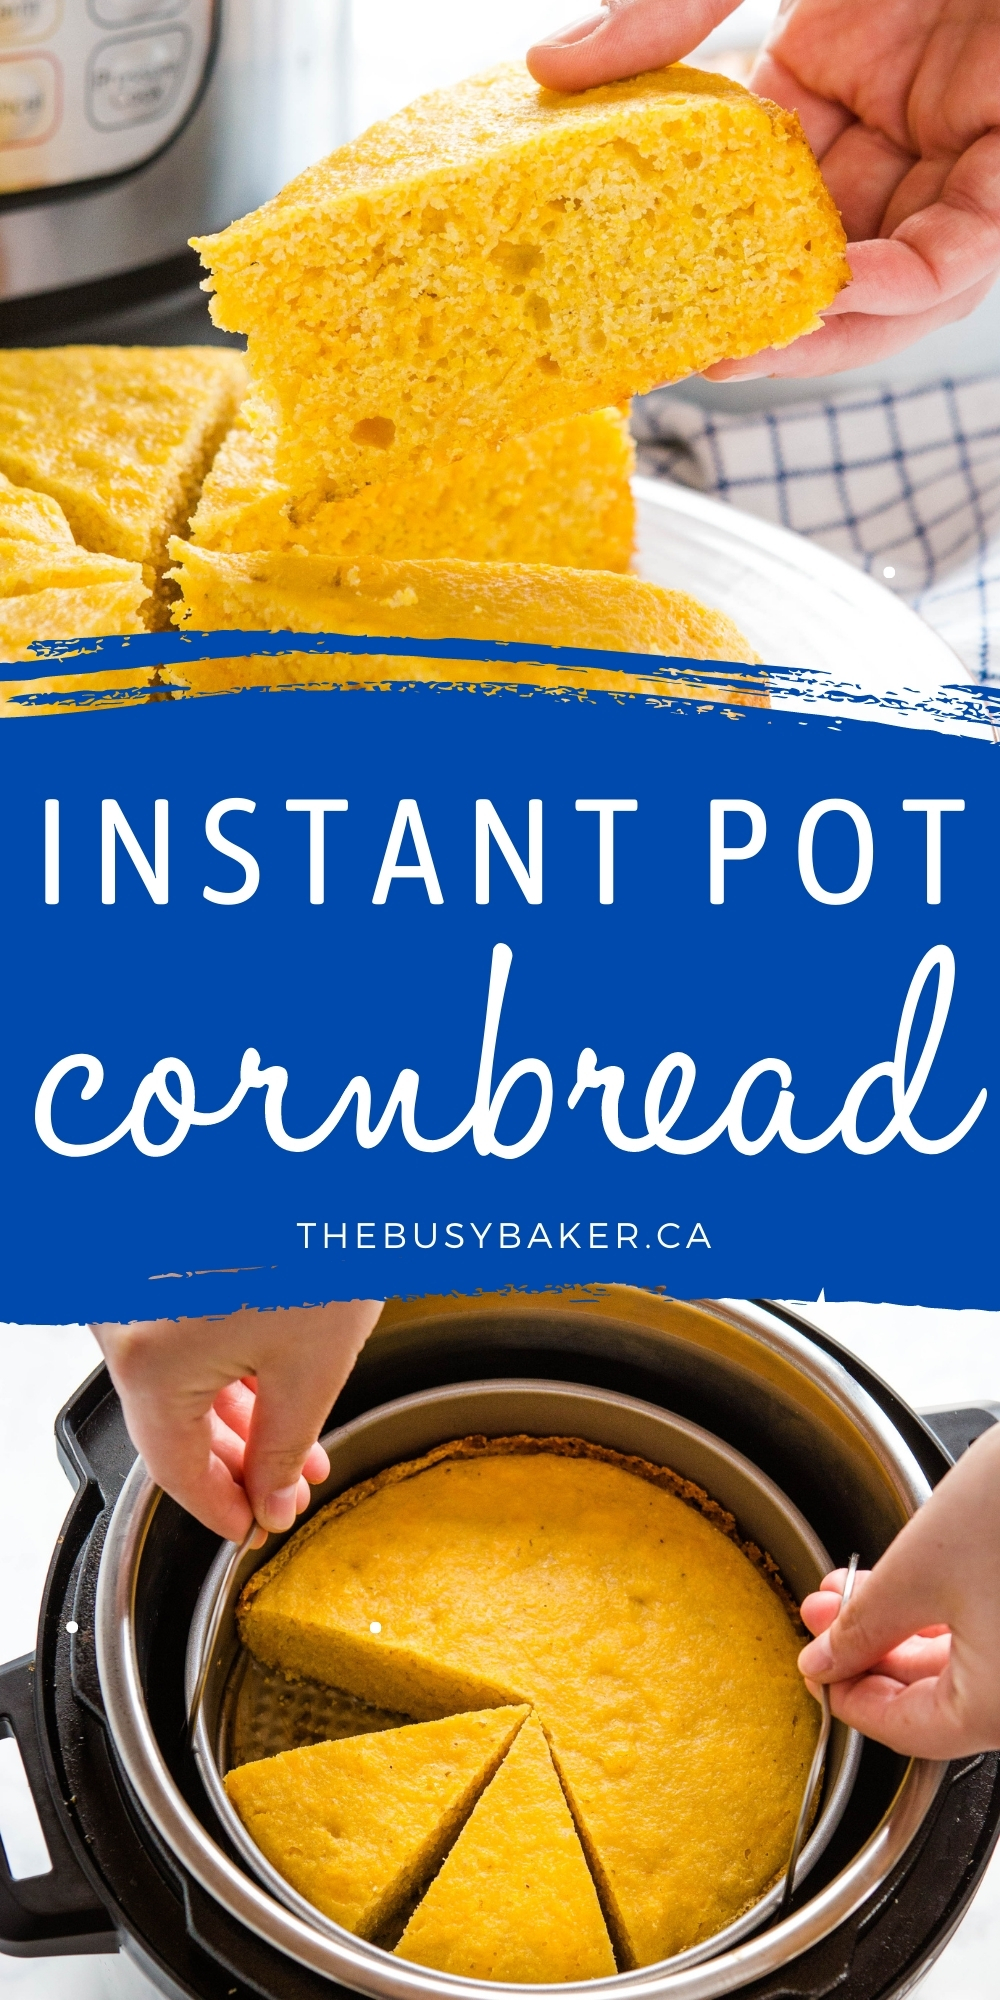 This Instant Pot Cornbread is perfectly light and fluffy, sweet and delicious! It's the classic cornbread you love, made EASY in the Instant Pot! Recipe from thebusybaker.ca! #cornbread #instantpot #pressurecooker #baking #chili #sidedish #classic #american via @busybakerblog